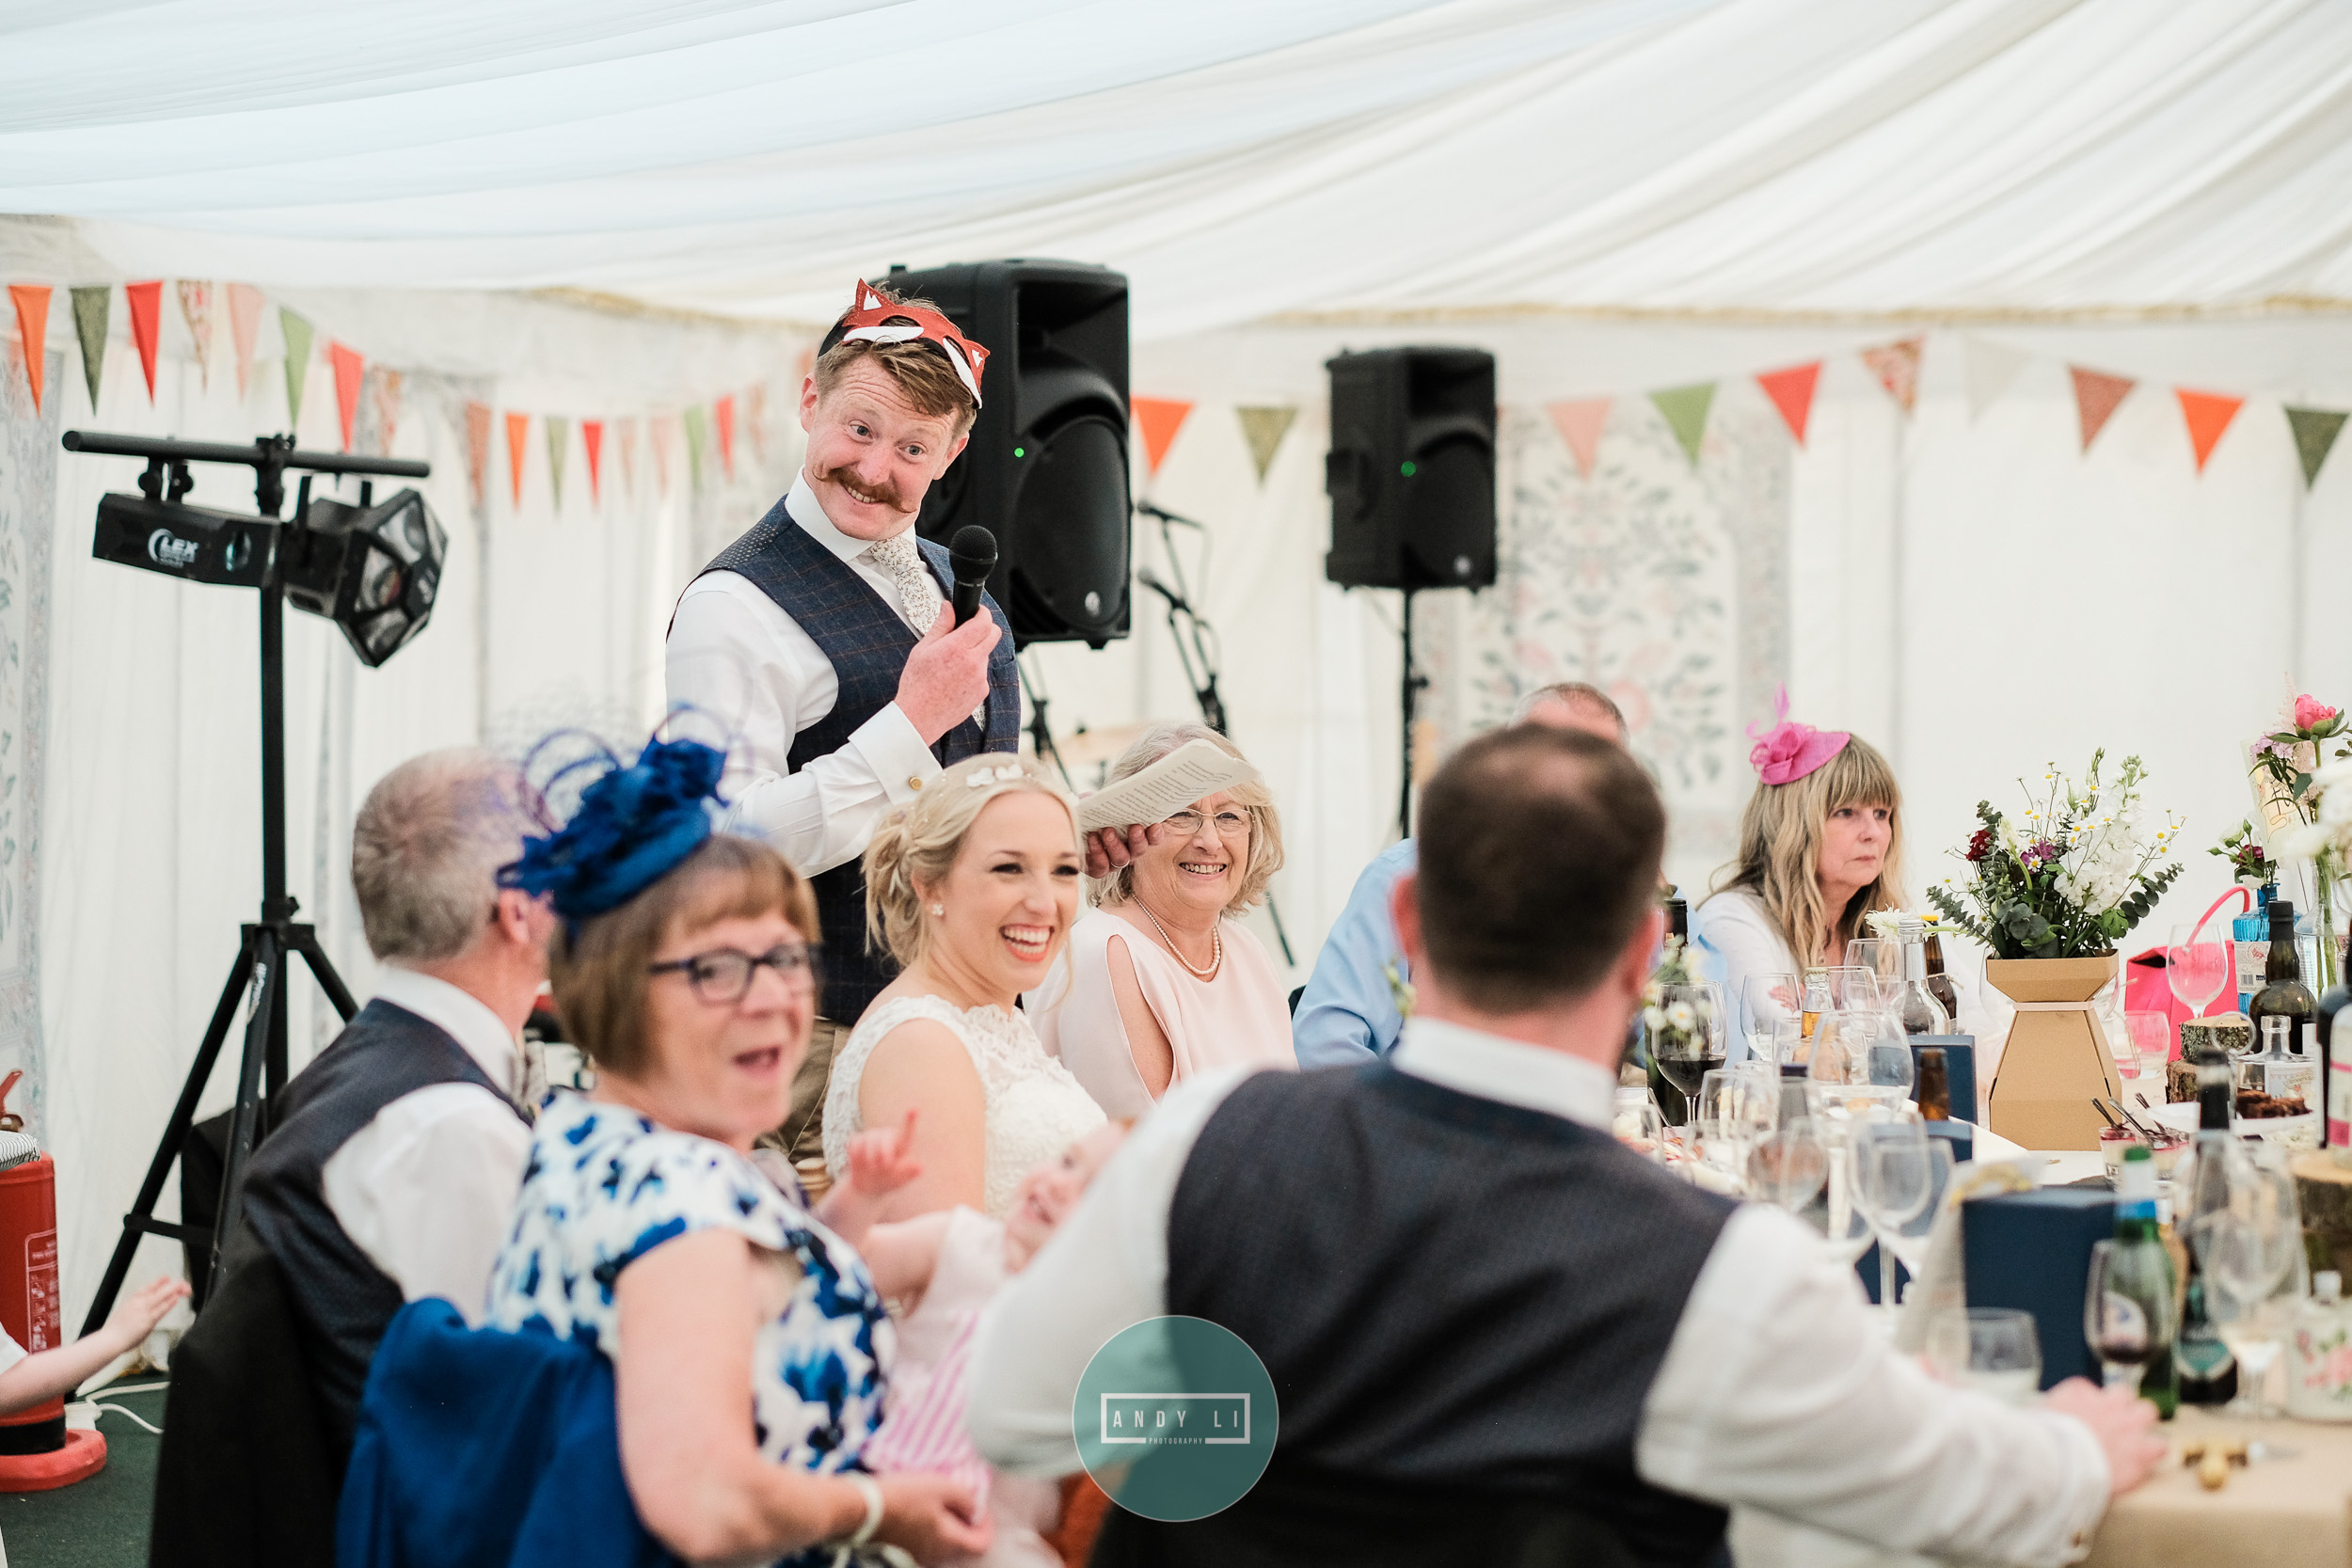 Sugnall Walled Garden Wedding Photographer-101-DSCF6141.jpg